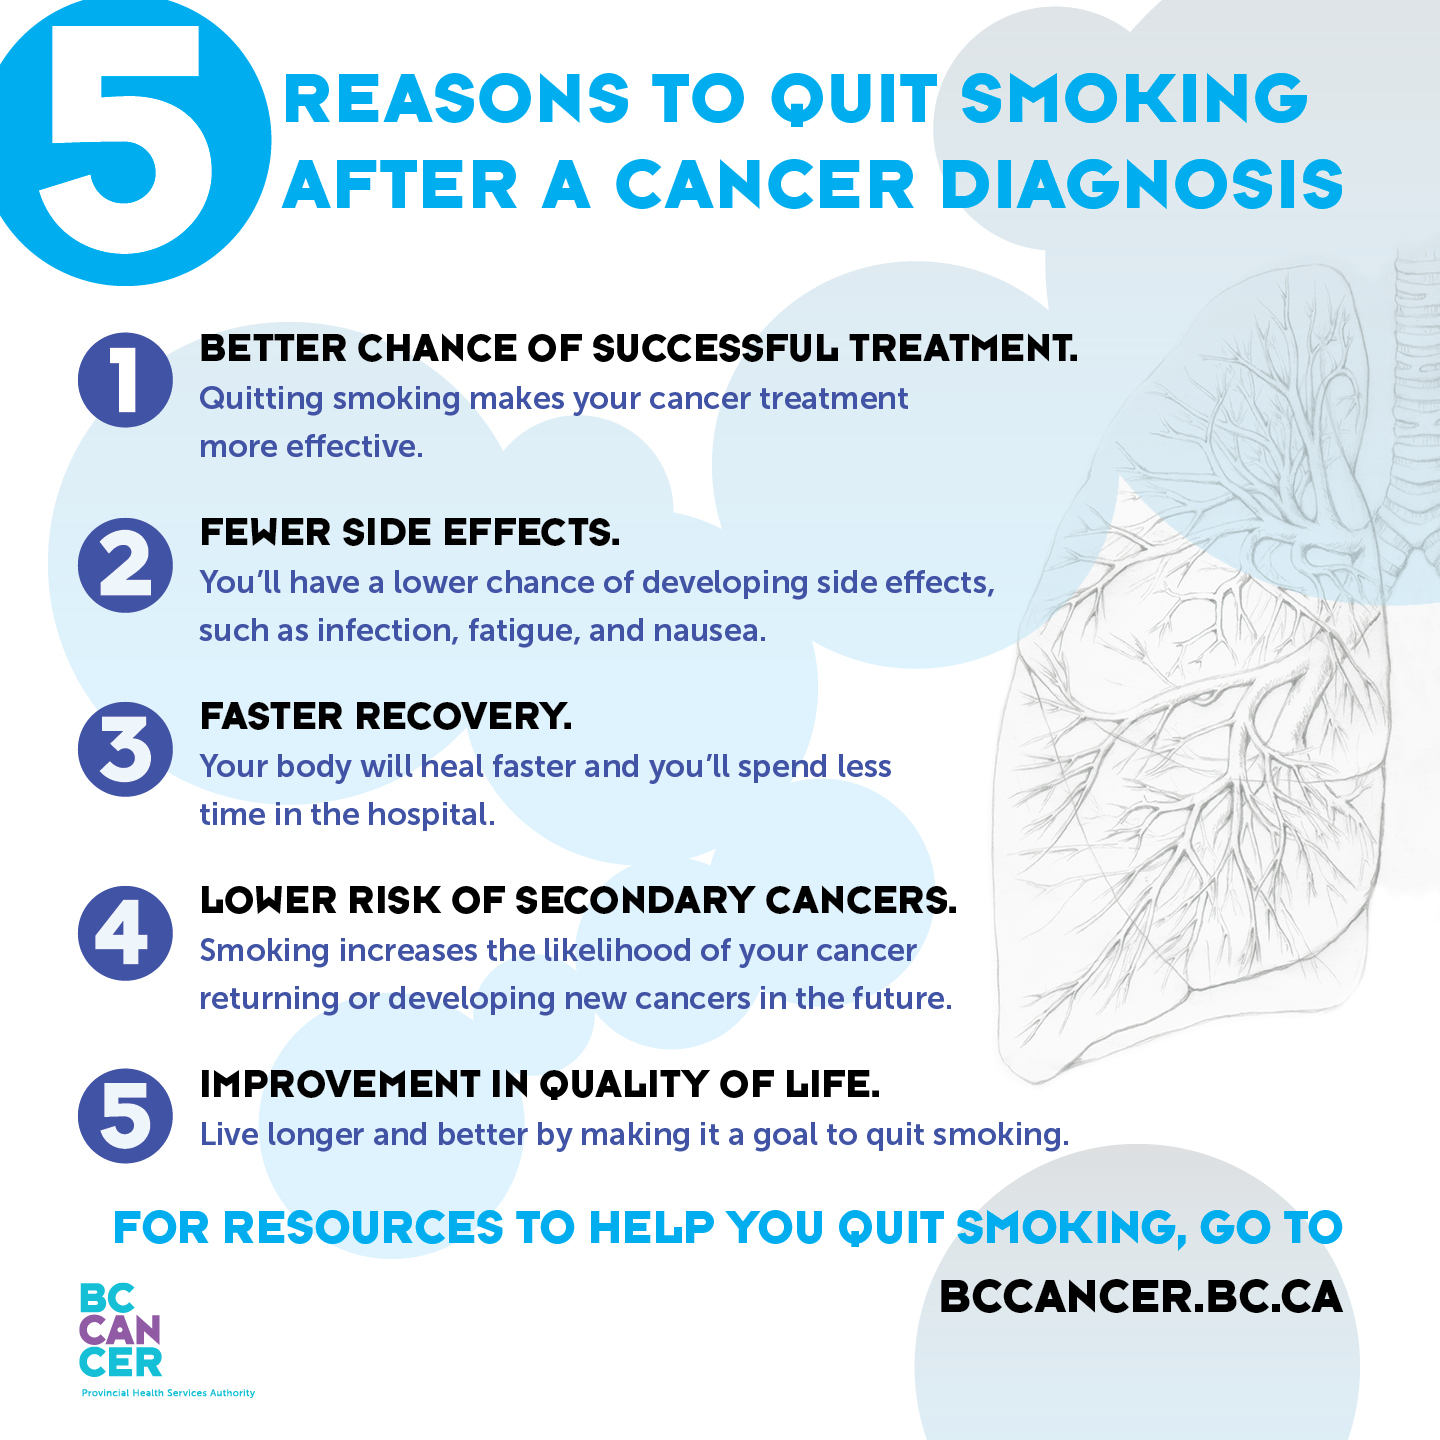 Five Reasons To Quit Smoking After A Cancer Diagnosis